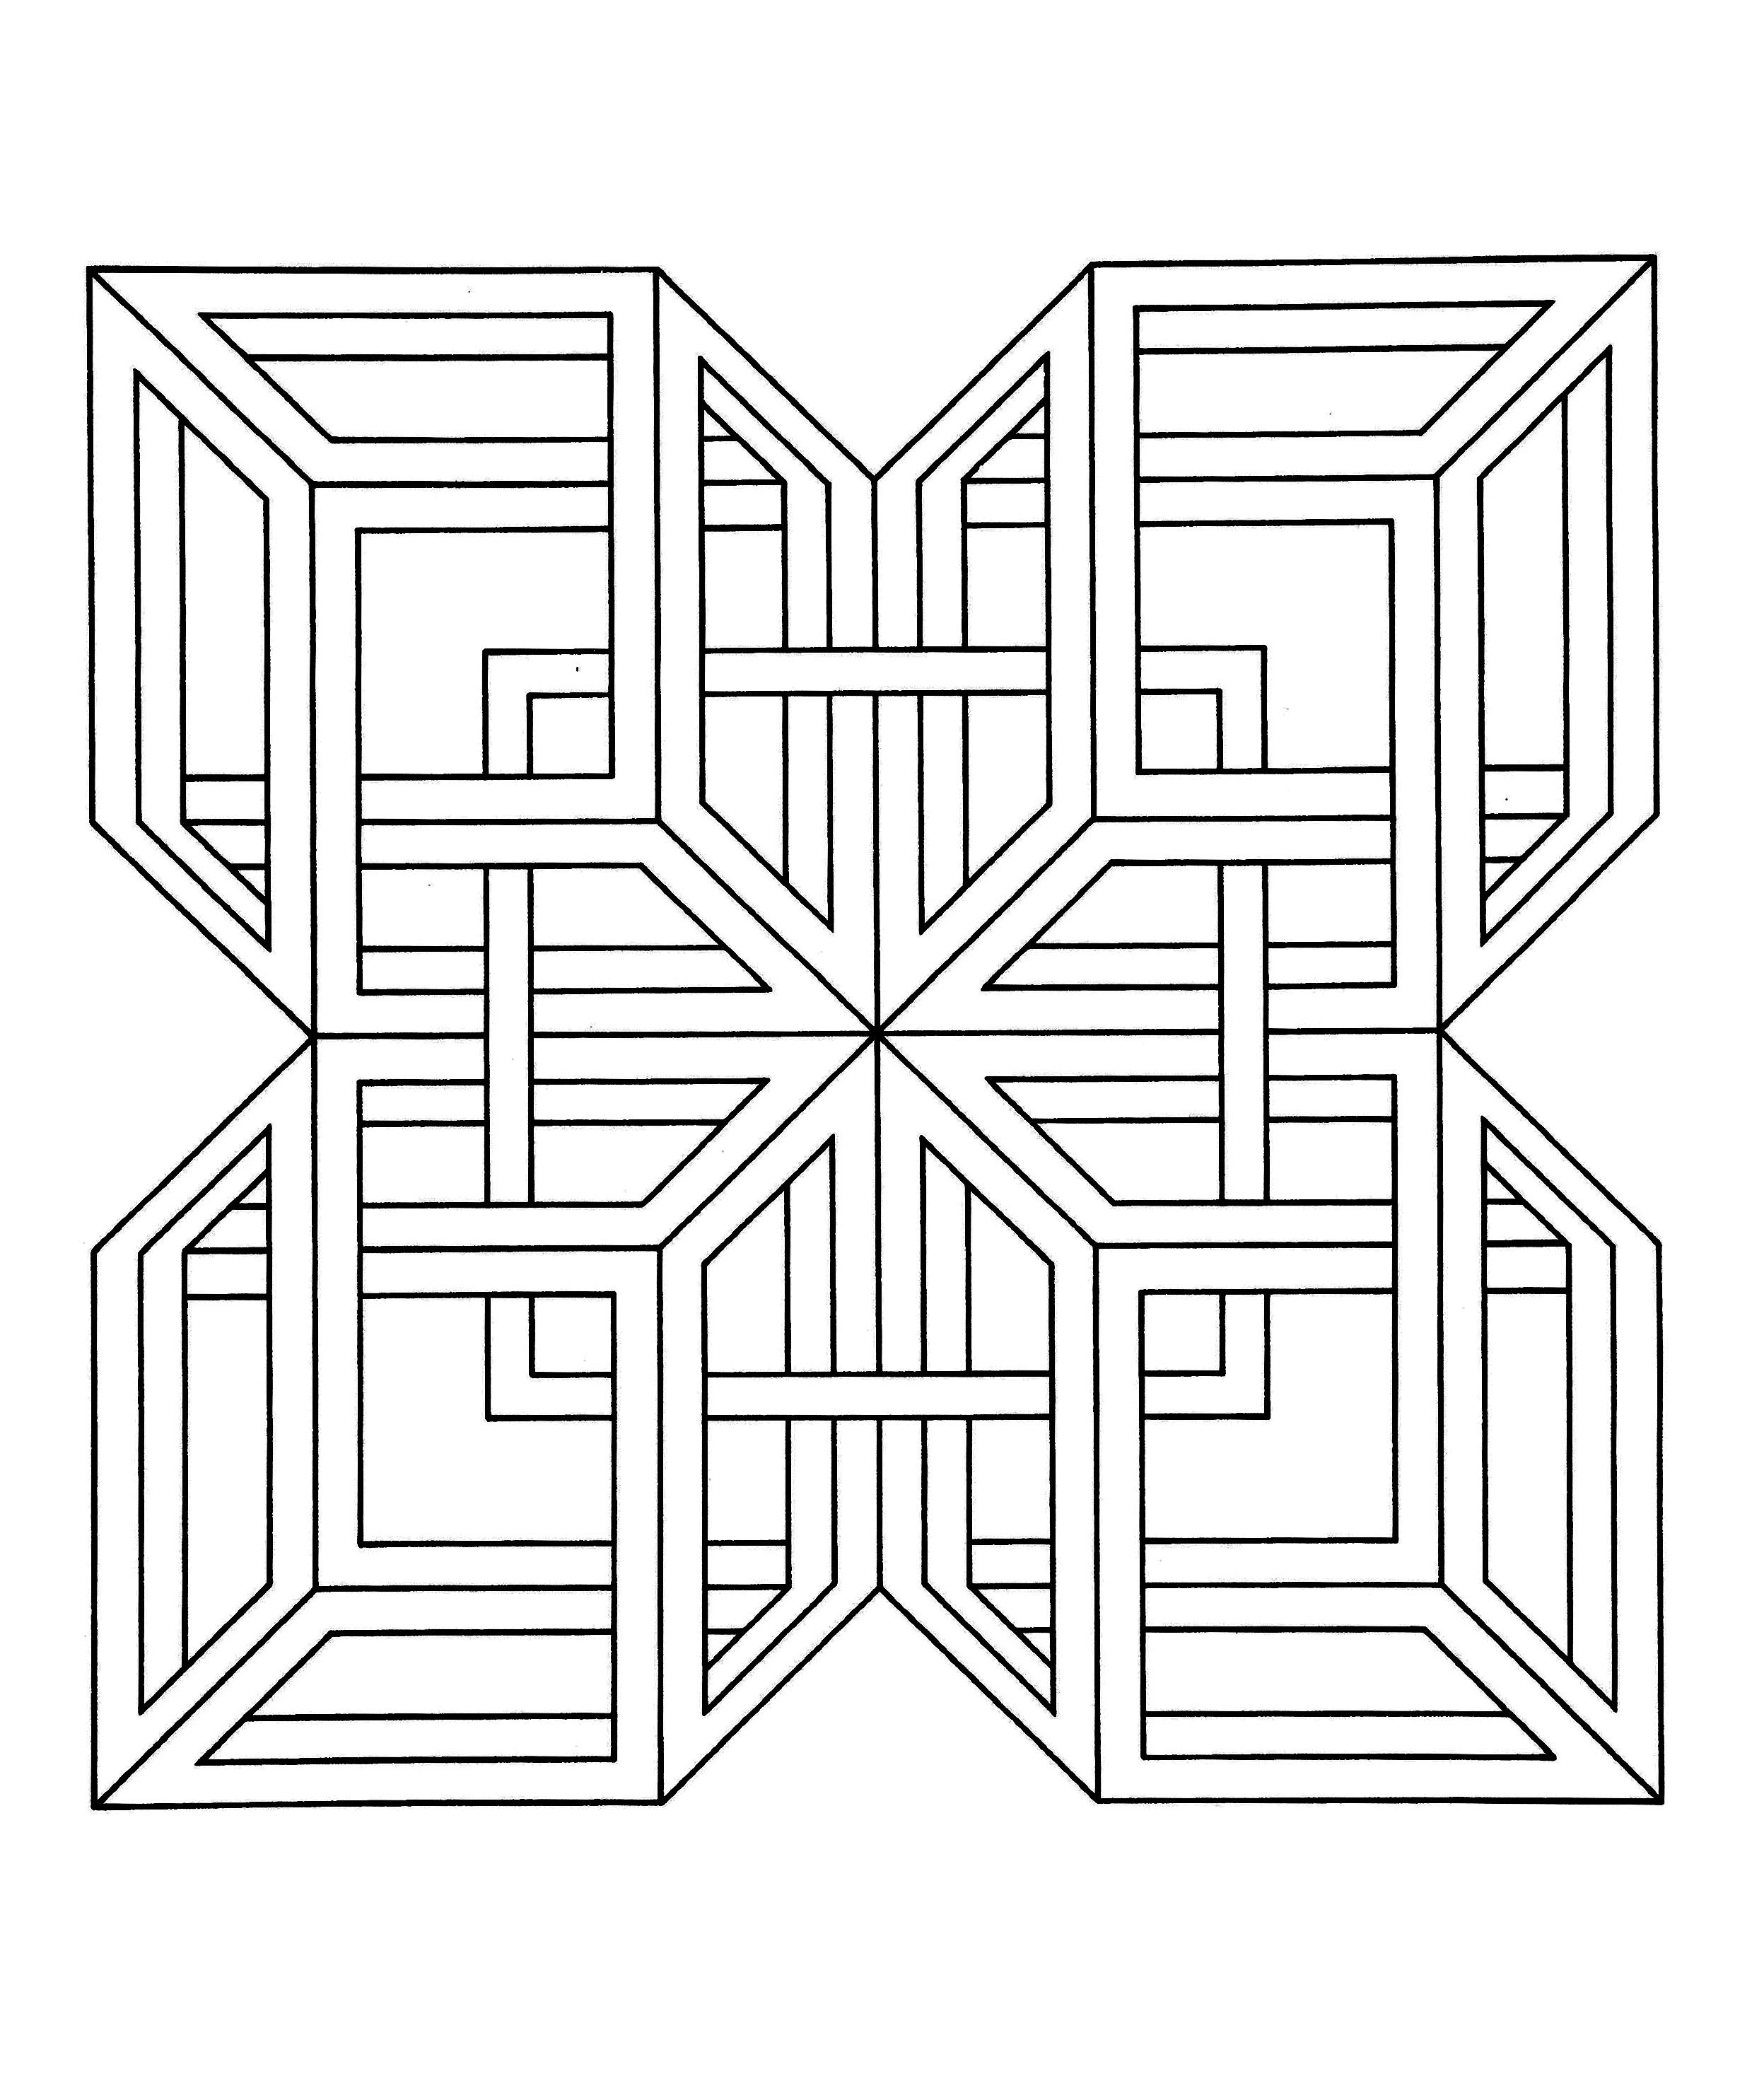 vasarely coloring pages - photo#32